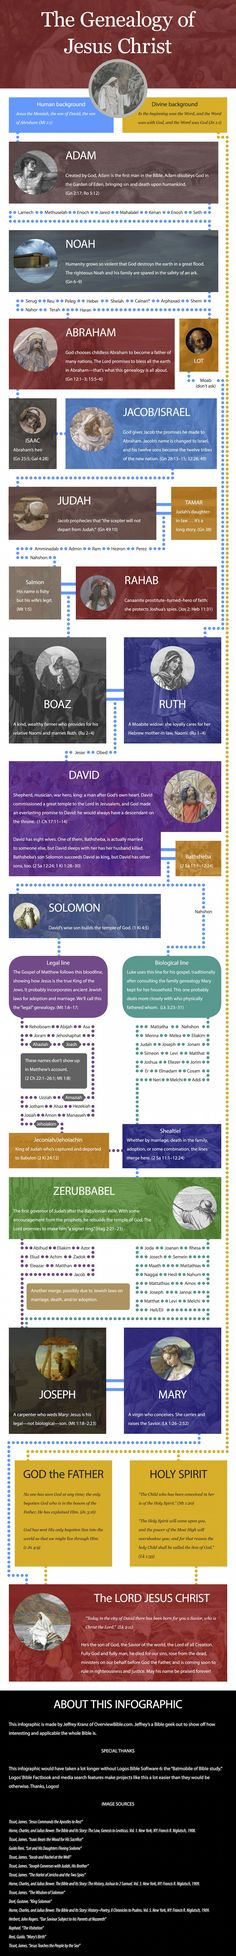 EXCLUSIVE: An Amazing Genealogy of Jesus Infographic